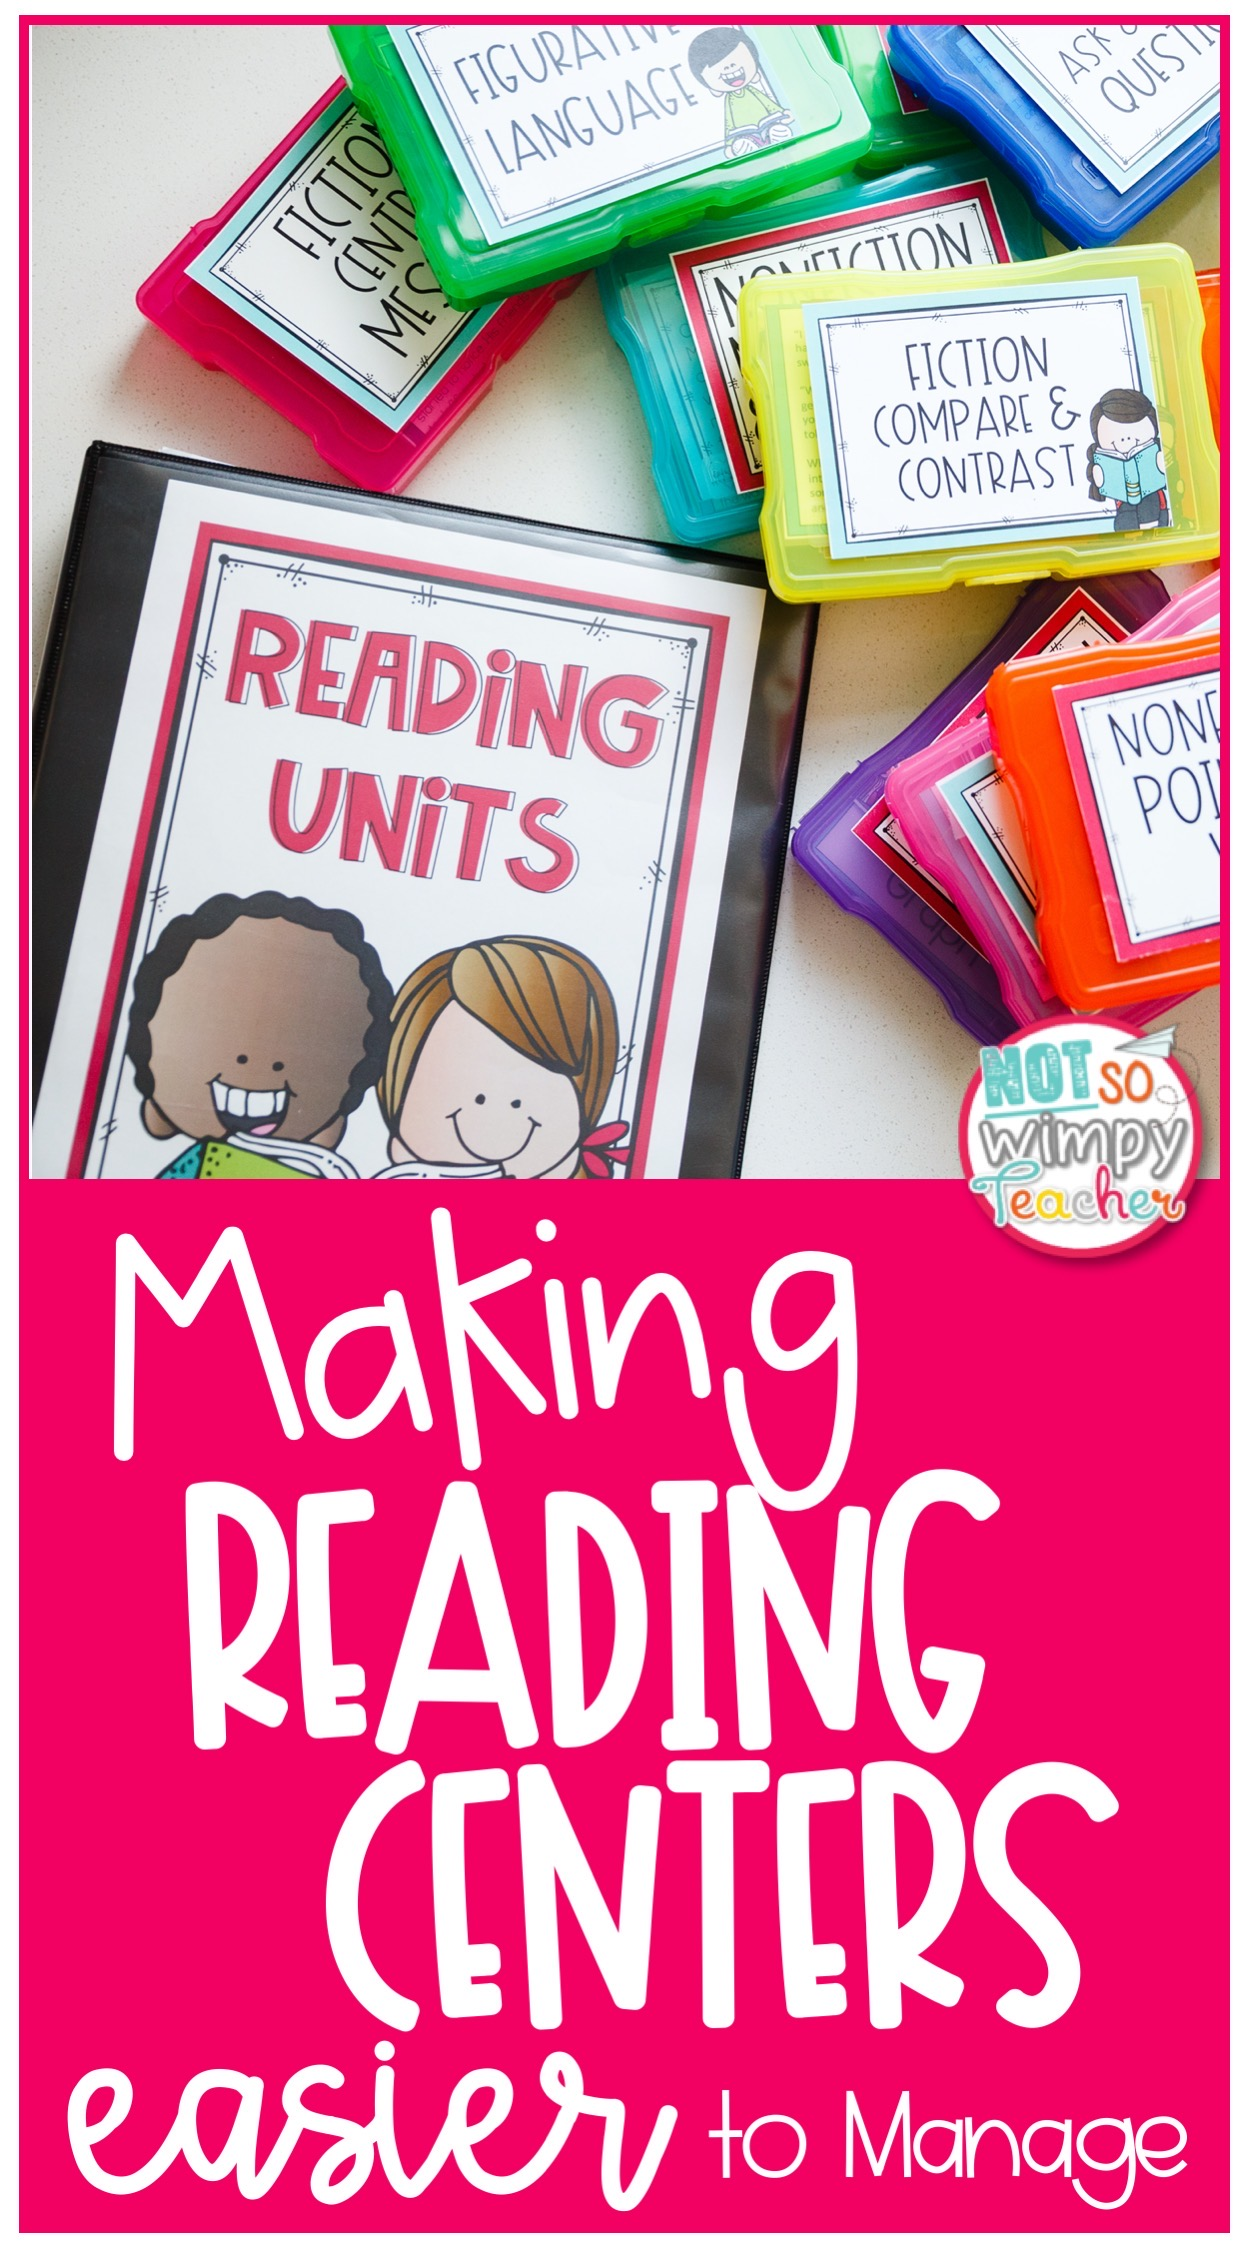 brightly colored boxed with text overlay making reading centers easier to manage